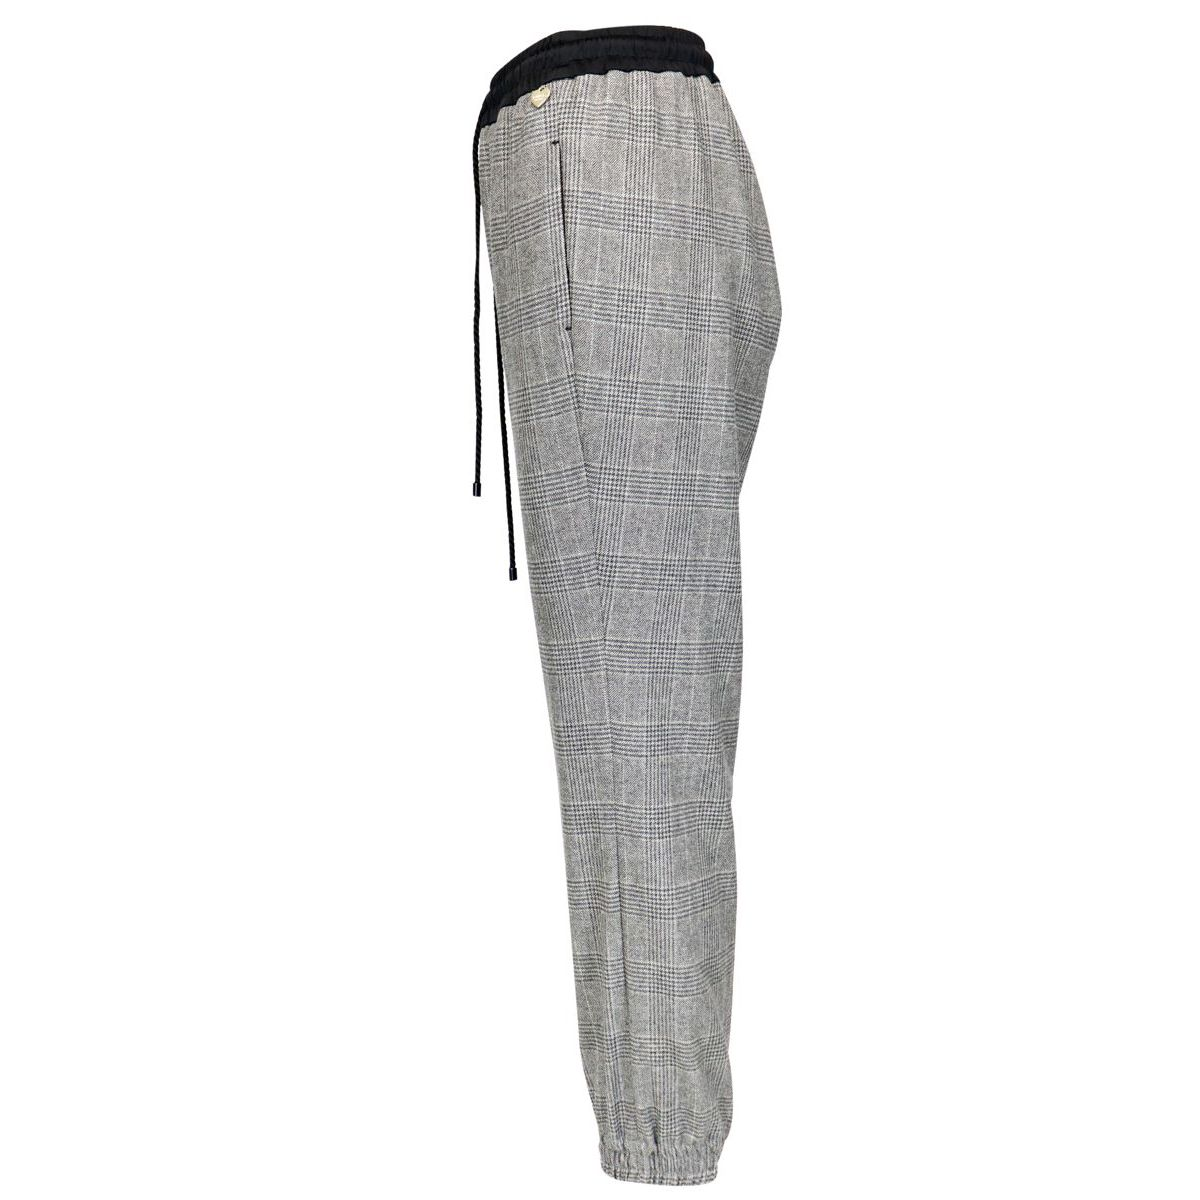 Jogging trousers with elasticated waist and contrasting drawstring Medium gray Twin-Set